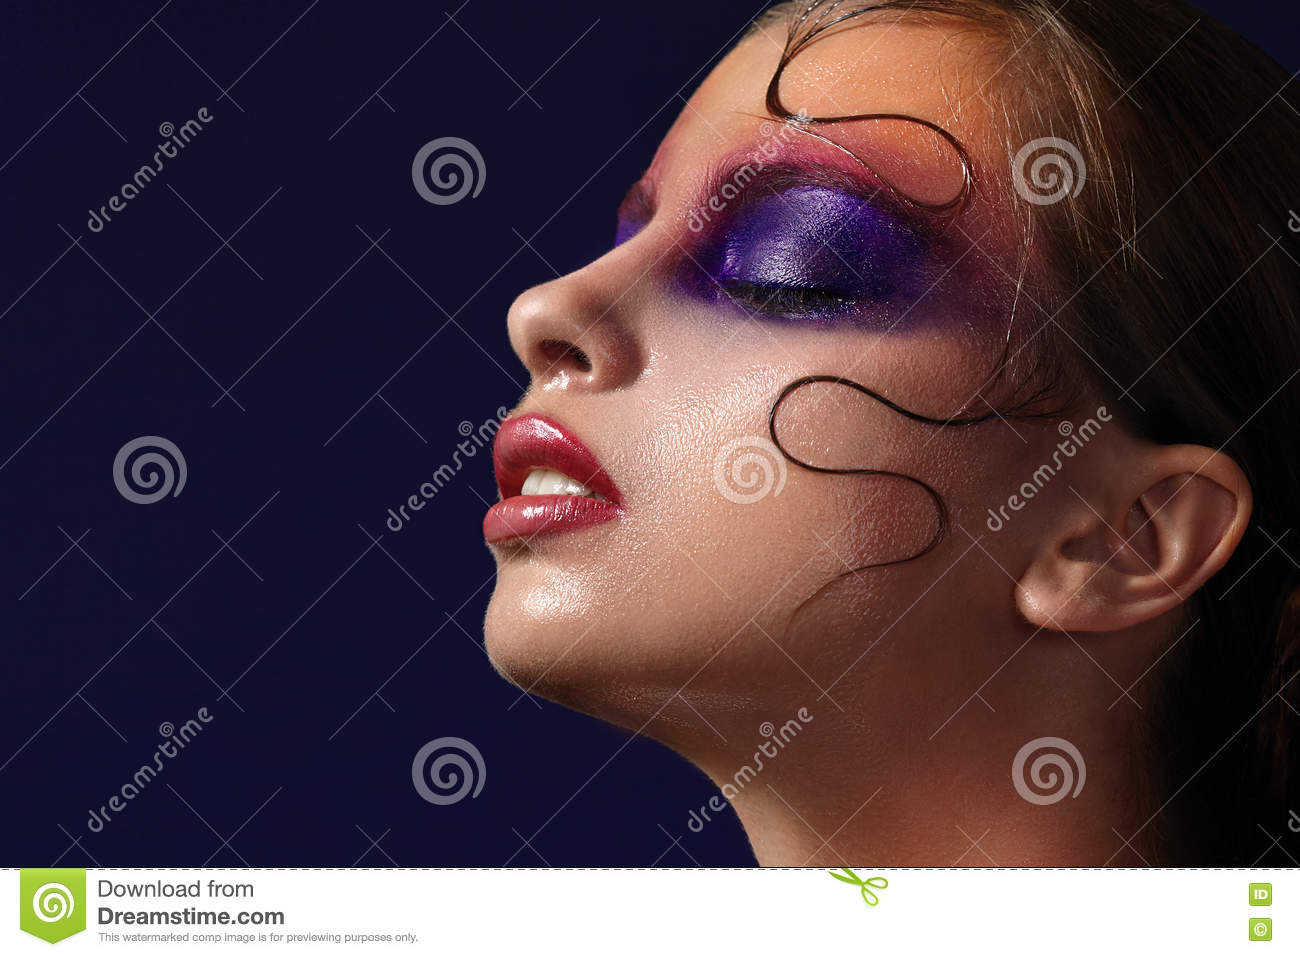 Close Up Portrait Of Girl With Purple Makeup On Eyes Stock Photo